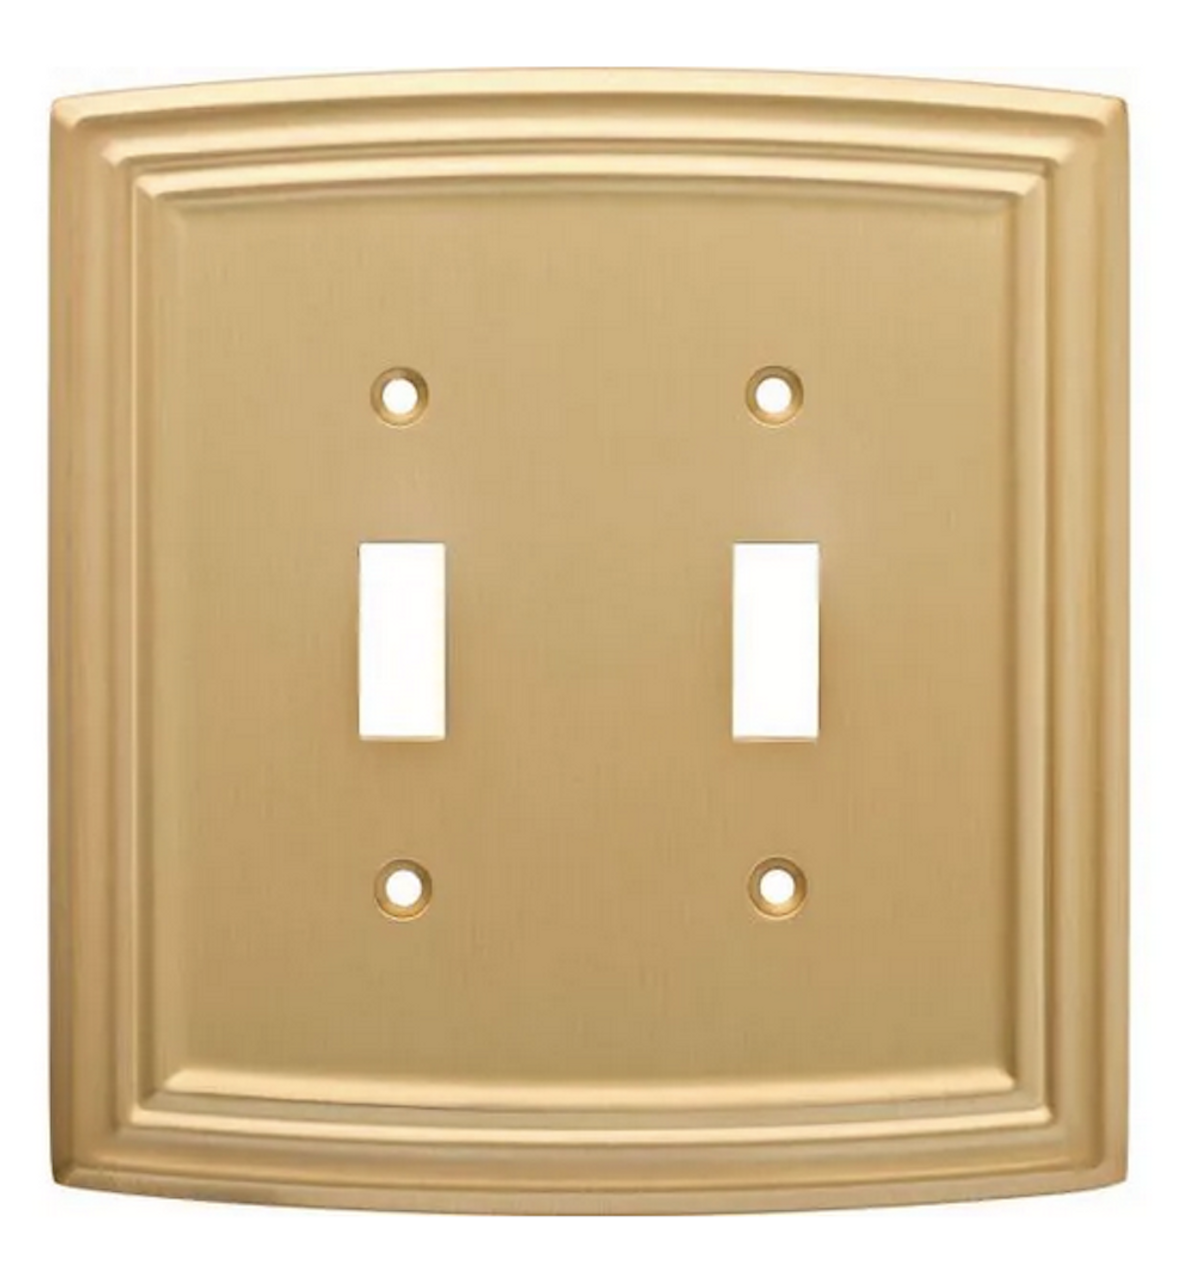 Liberty W36399-117 Classical Emery Double Switch Brushed Brass Cover Plate